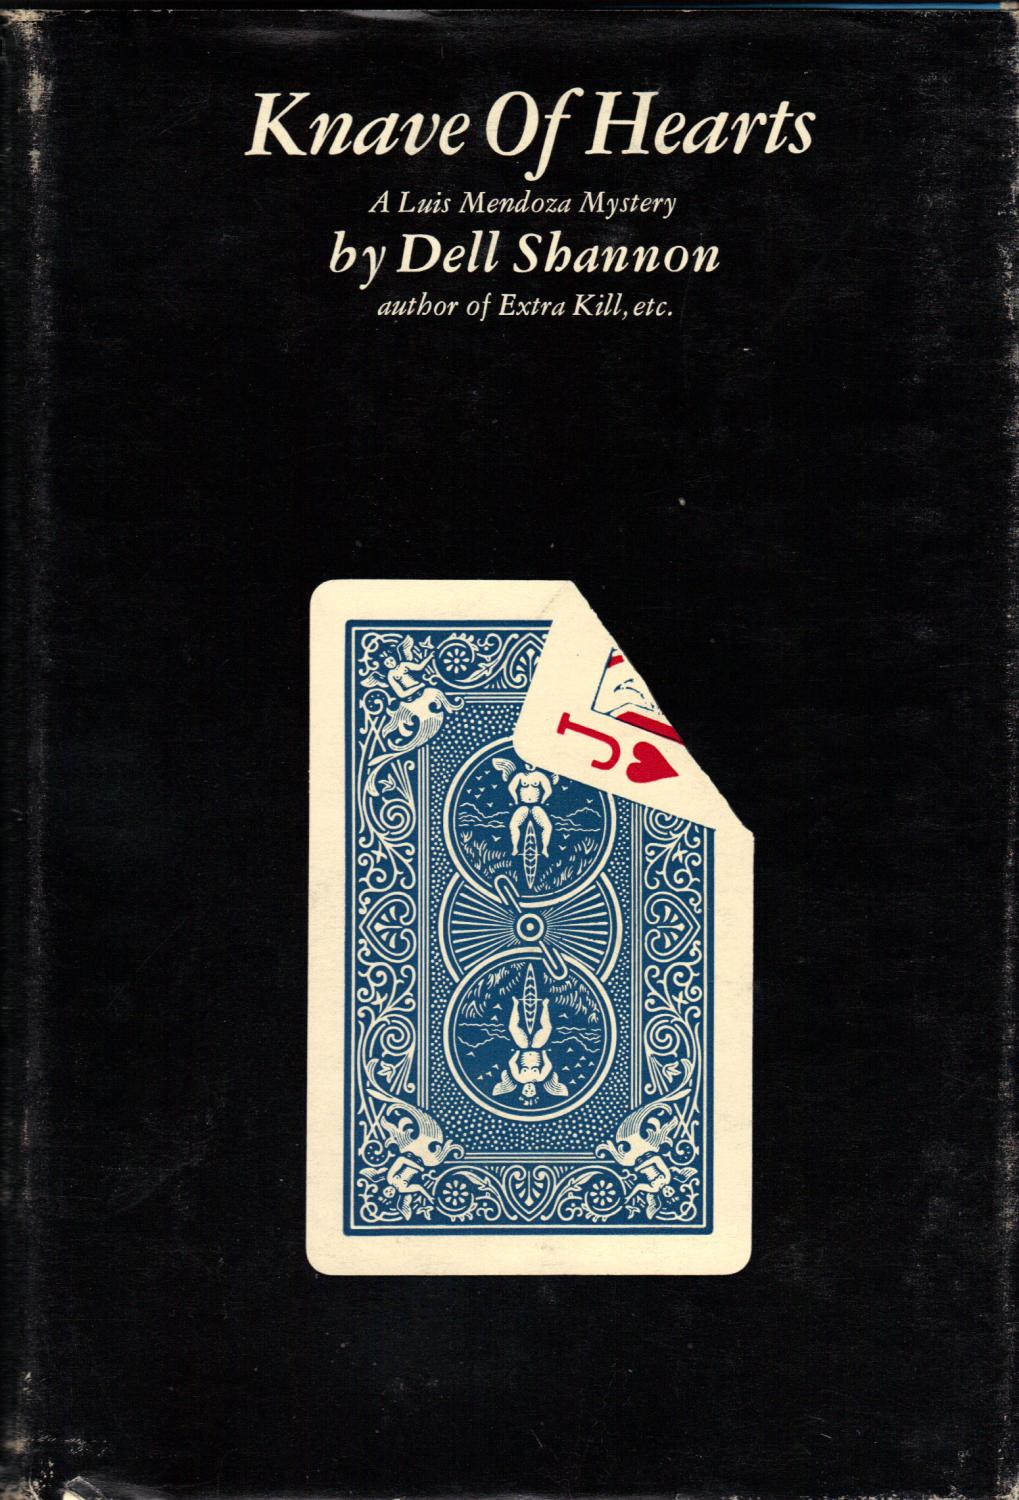 KNAVE OF HEARTS SHANNON, Dell NEAR FINE in VERY GOOD dust jacket. HARDCOVER. 1962. FIRST EDITION. Bound in blue boards in black Bicycle Club jack of hearts dust jacket. Square and